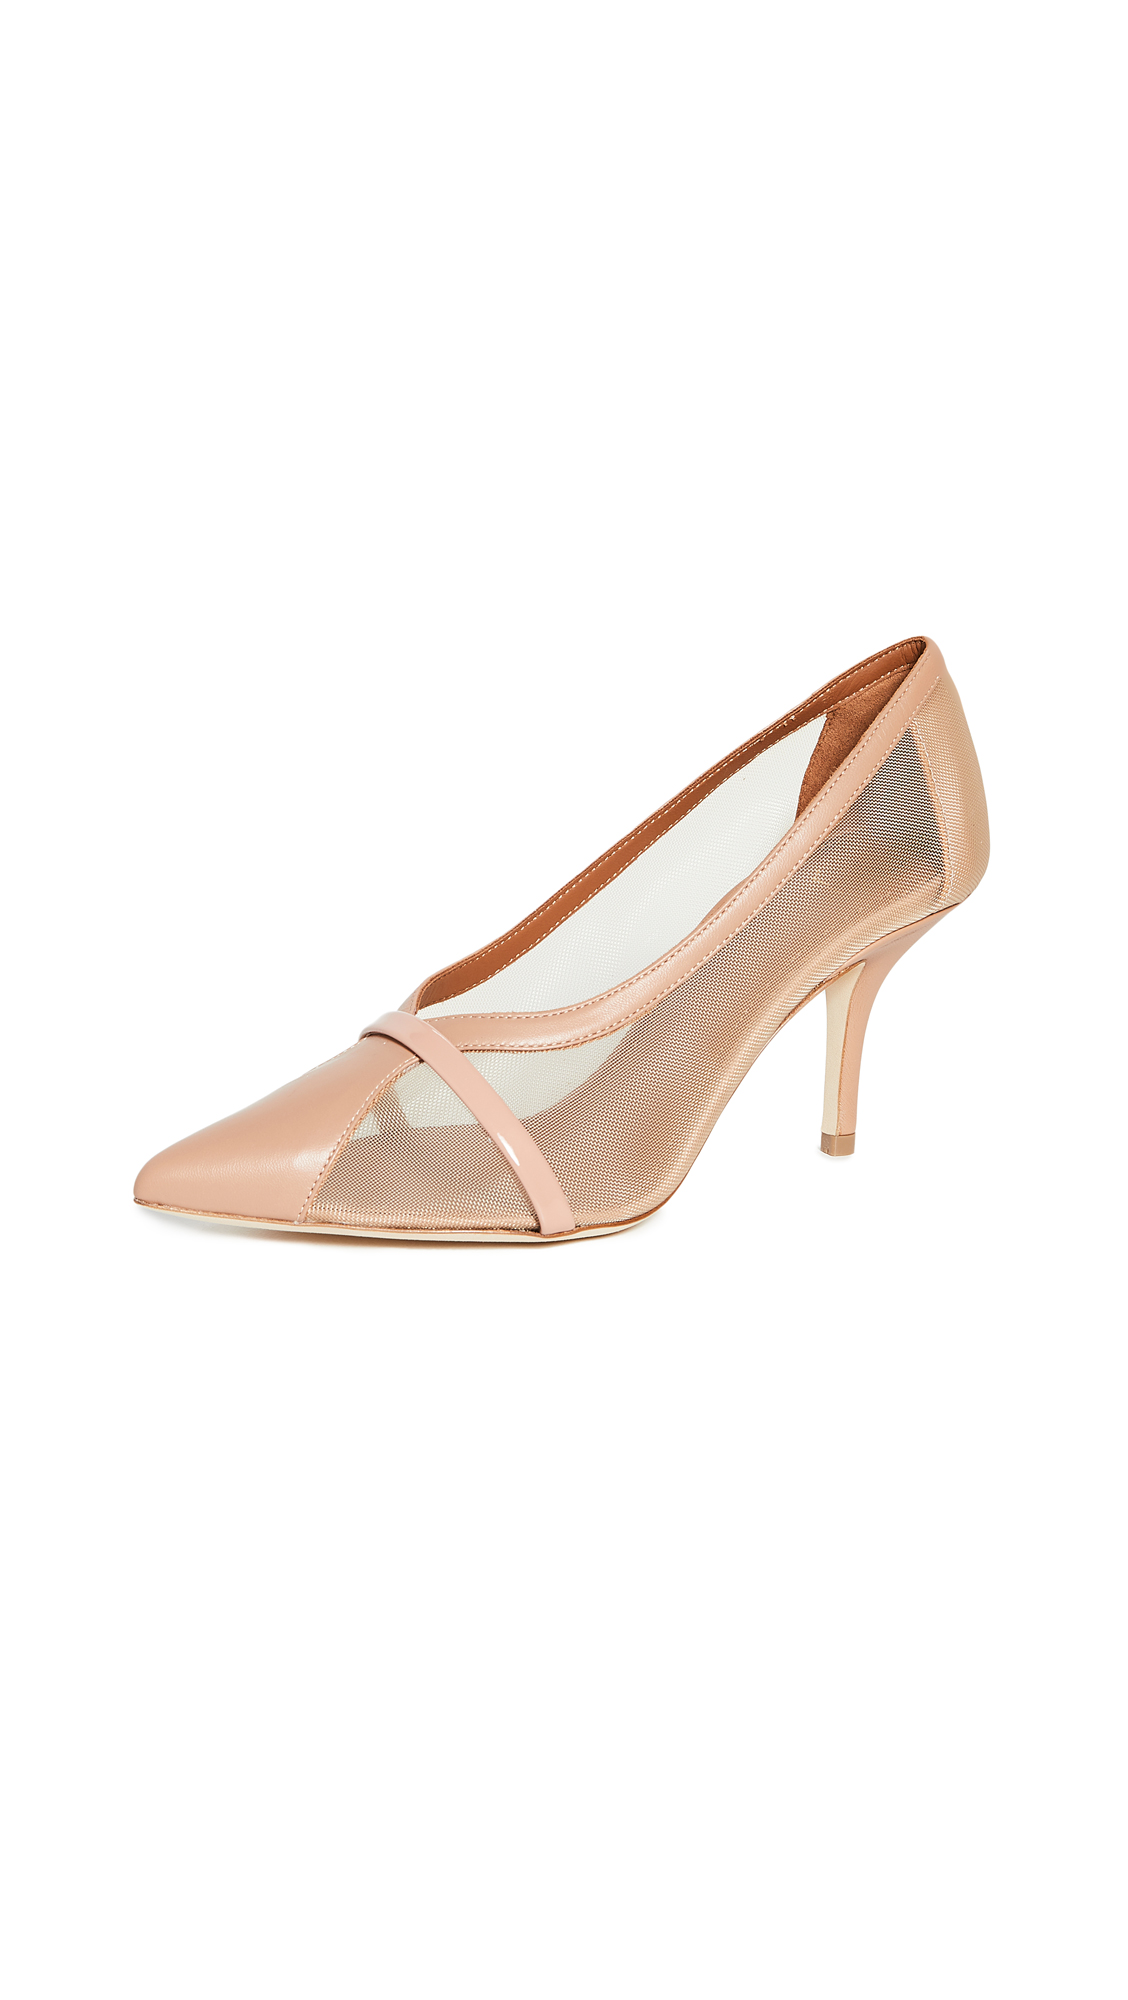 Buy Malone Souliers Brook Pumps 70mm online, shop Malone Souliers